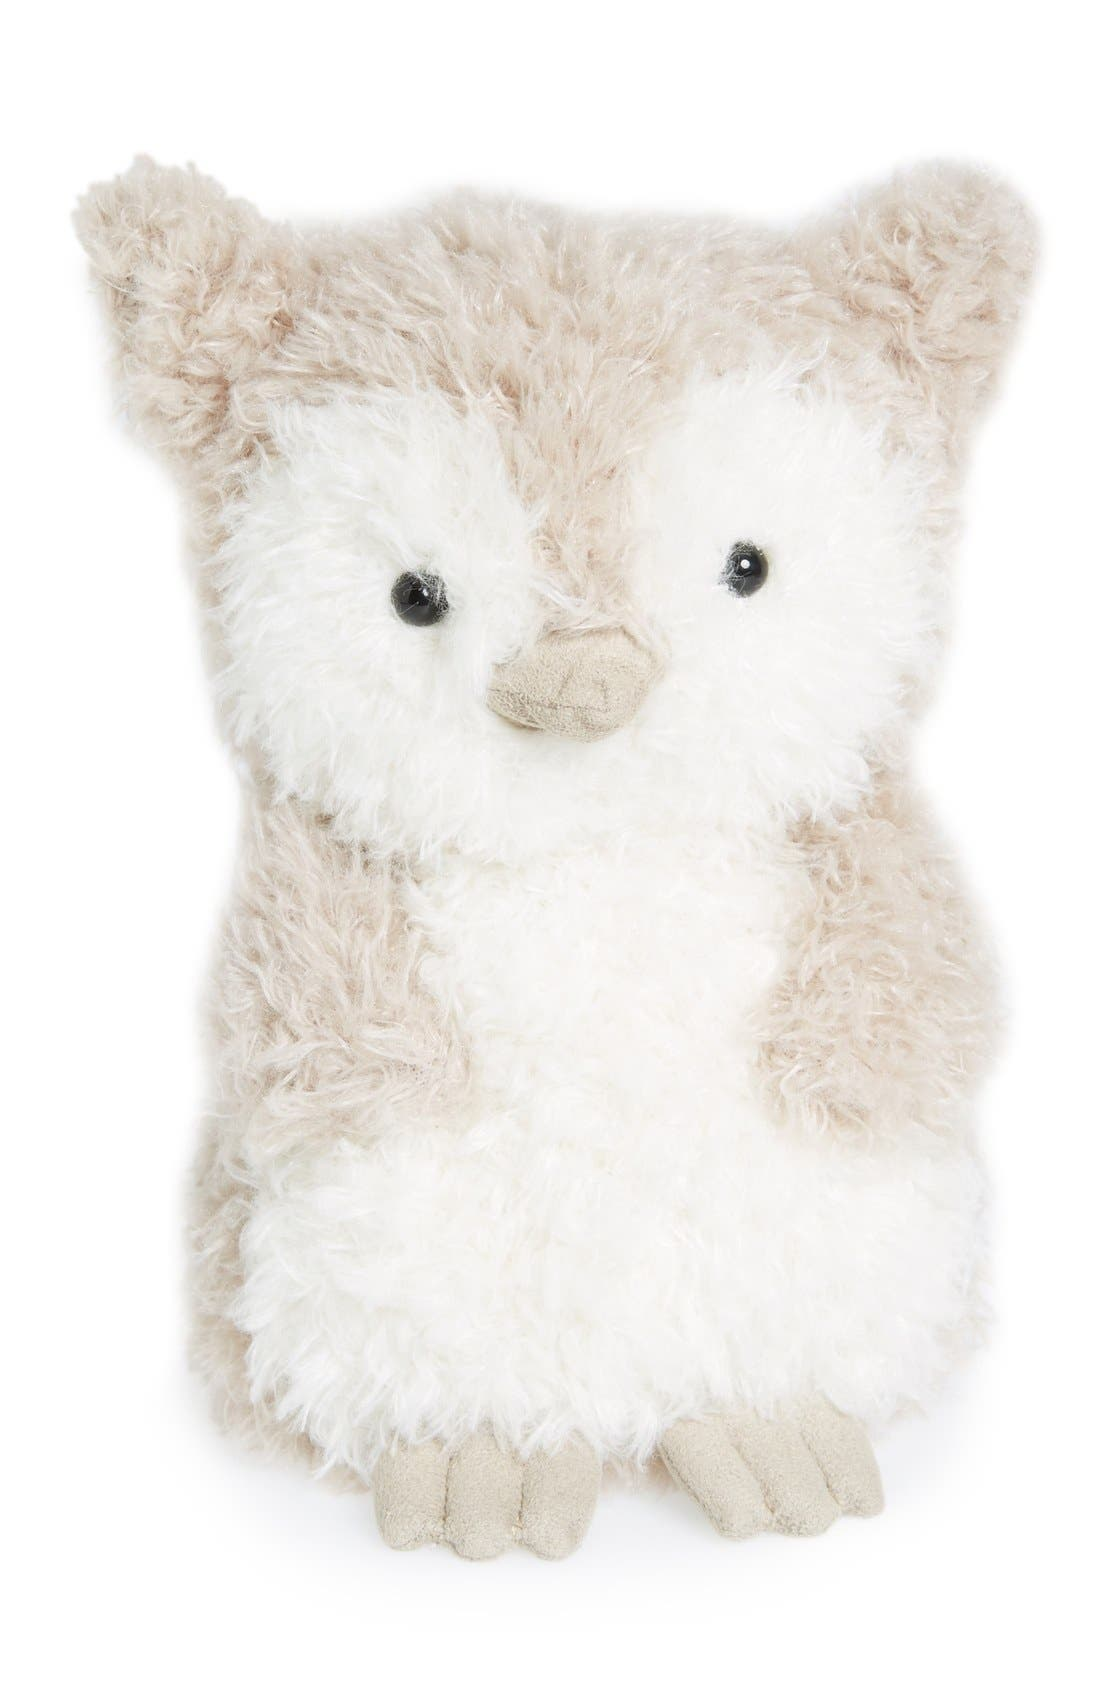 JELLYCAT 'Wake Up Little Owl' Stuffed Animal, Main, color, 020